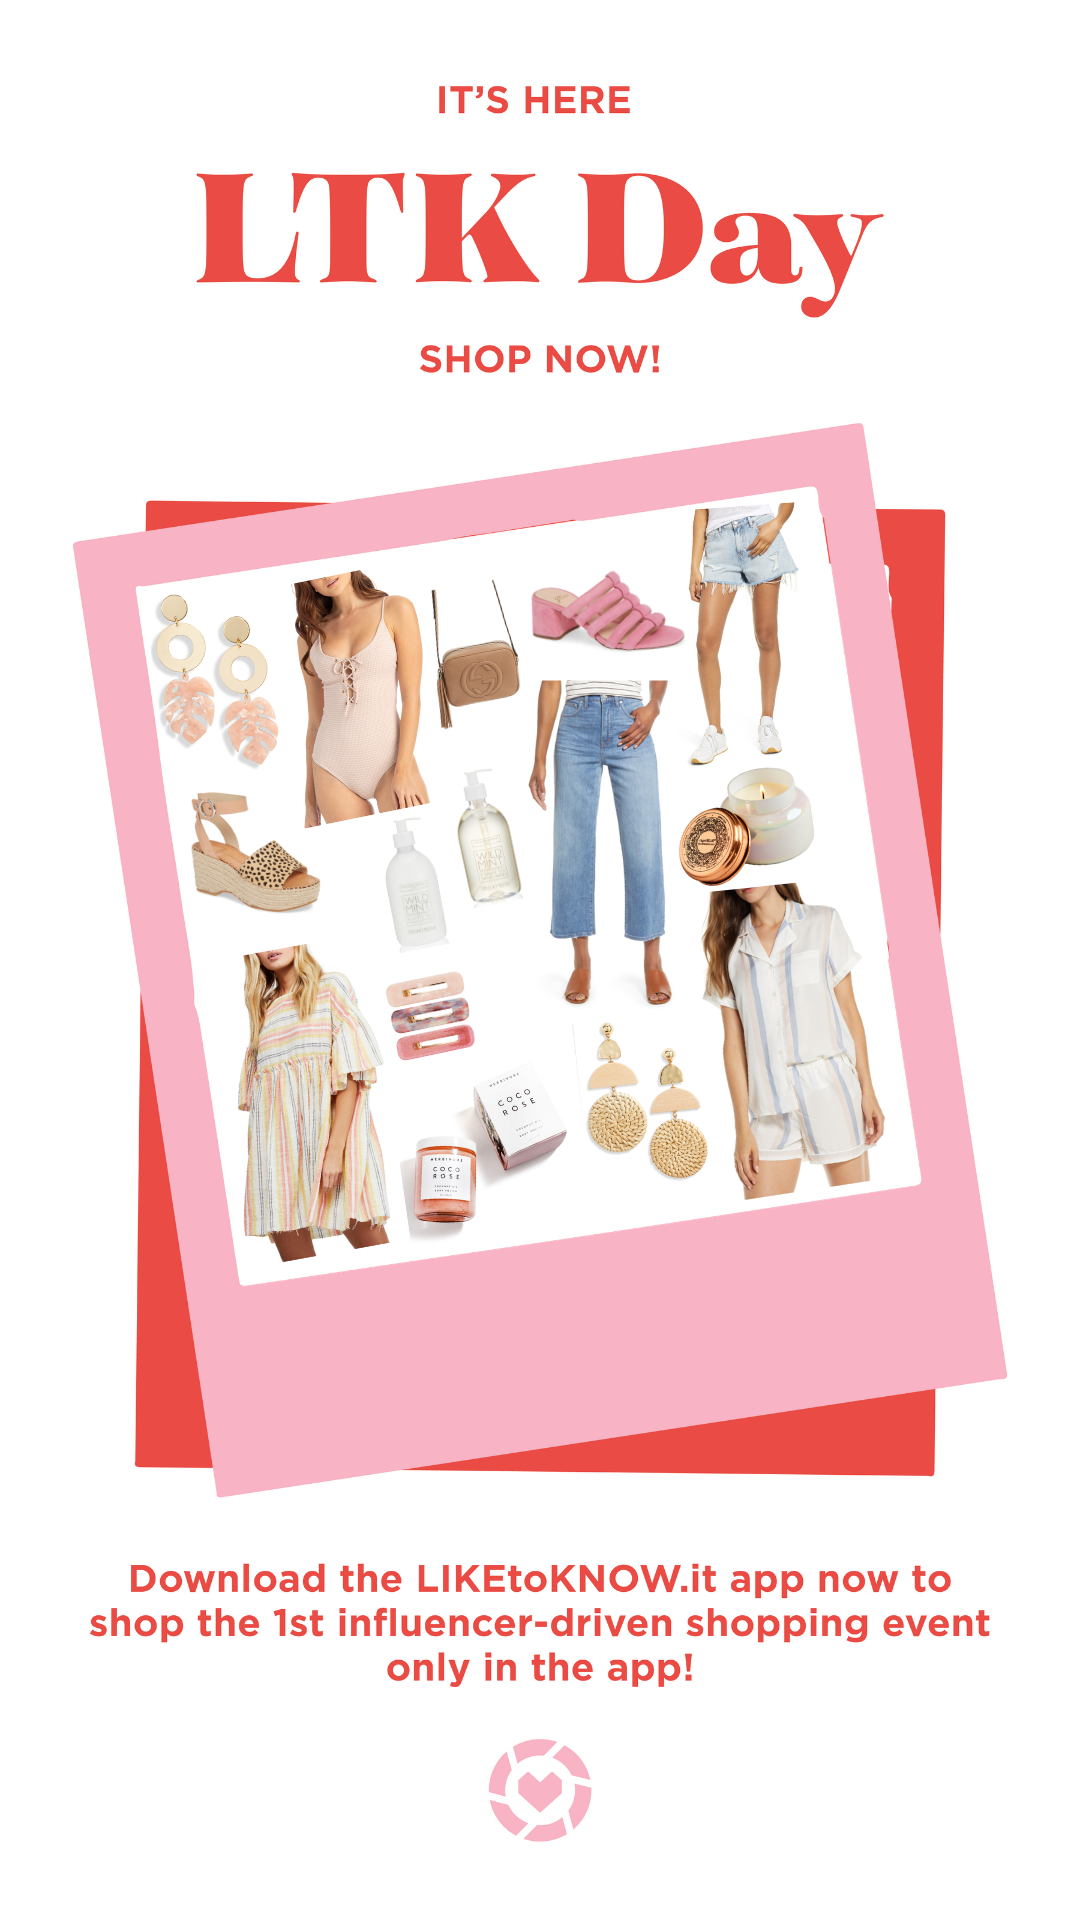 Pink Palm Earrings  |  Nude One-Piece  |  Gucci Cross-body  |  Pink Sandals  |  Blue Jean Boyfriend Shorts  |  Leopard Wedge  |  White Mint Lotion  |  White Mint Soap  |  Wide Leg Denim  |  Capri Candle  |  Striped Dress  |  Hair Clips  |  COCO Rose Scrub  |  Basket-weave Earrings  |  PJ Set  |